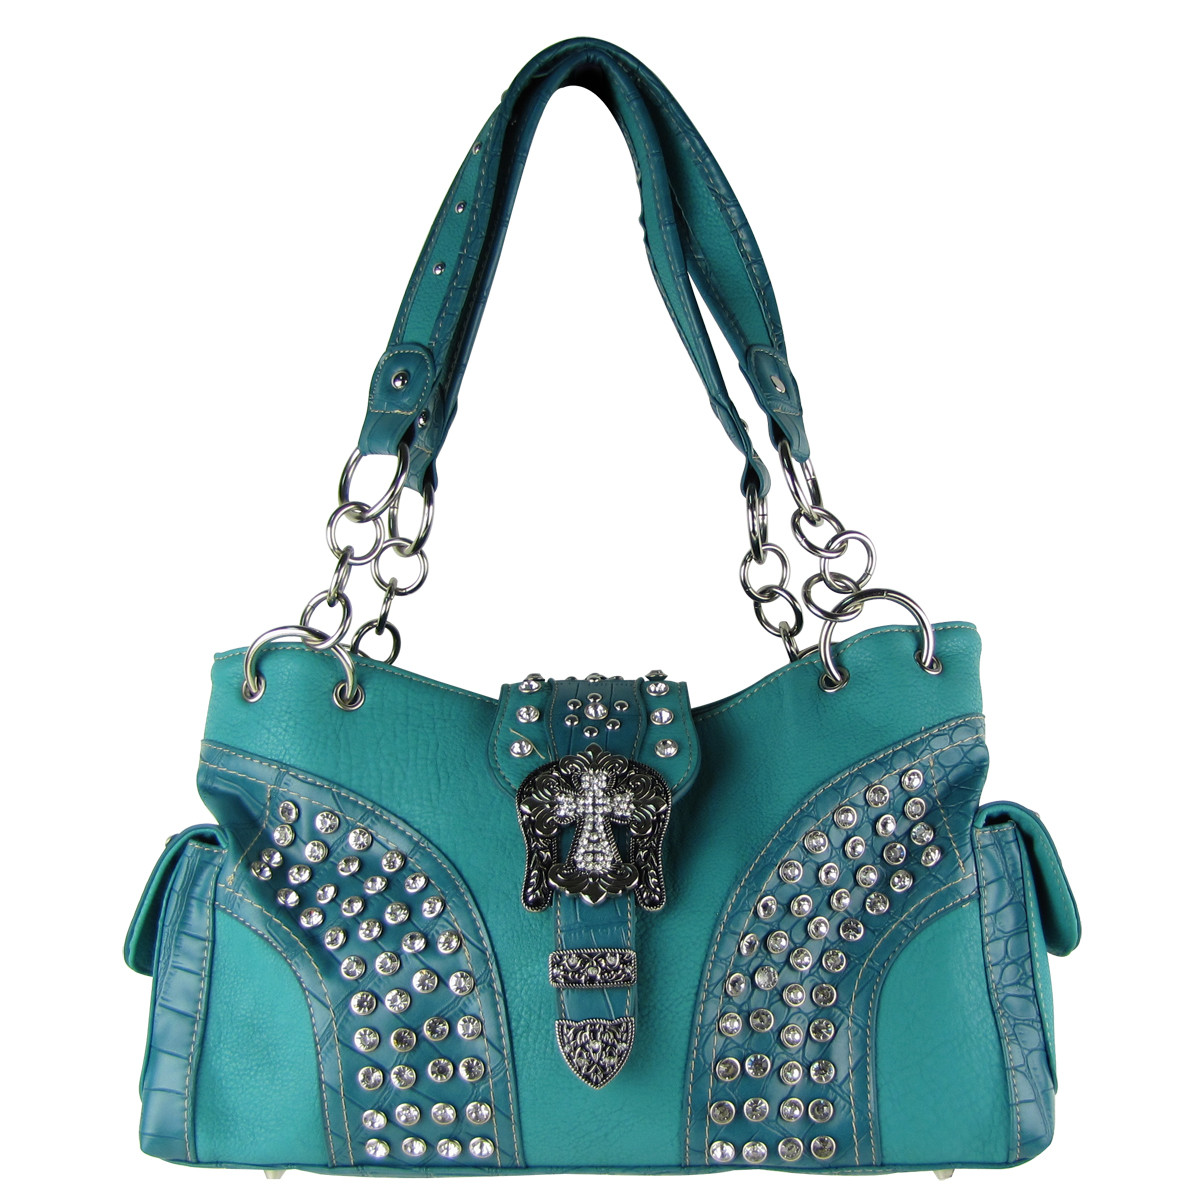 TURQUOISE STUDDED RHINESTONE CROSS BUCKLE SHOULDER HANDBAG HB1-HL12150TRQ